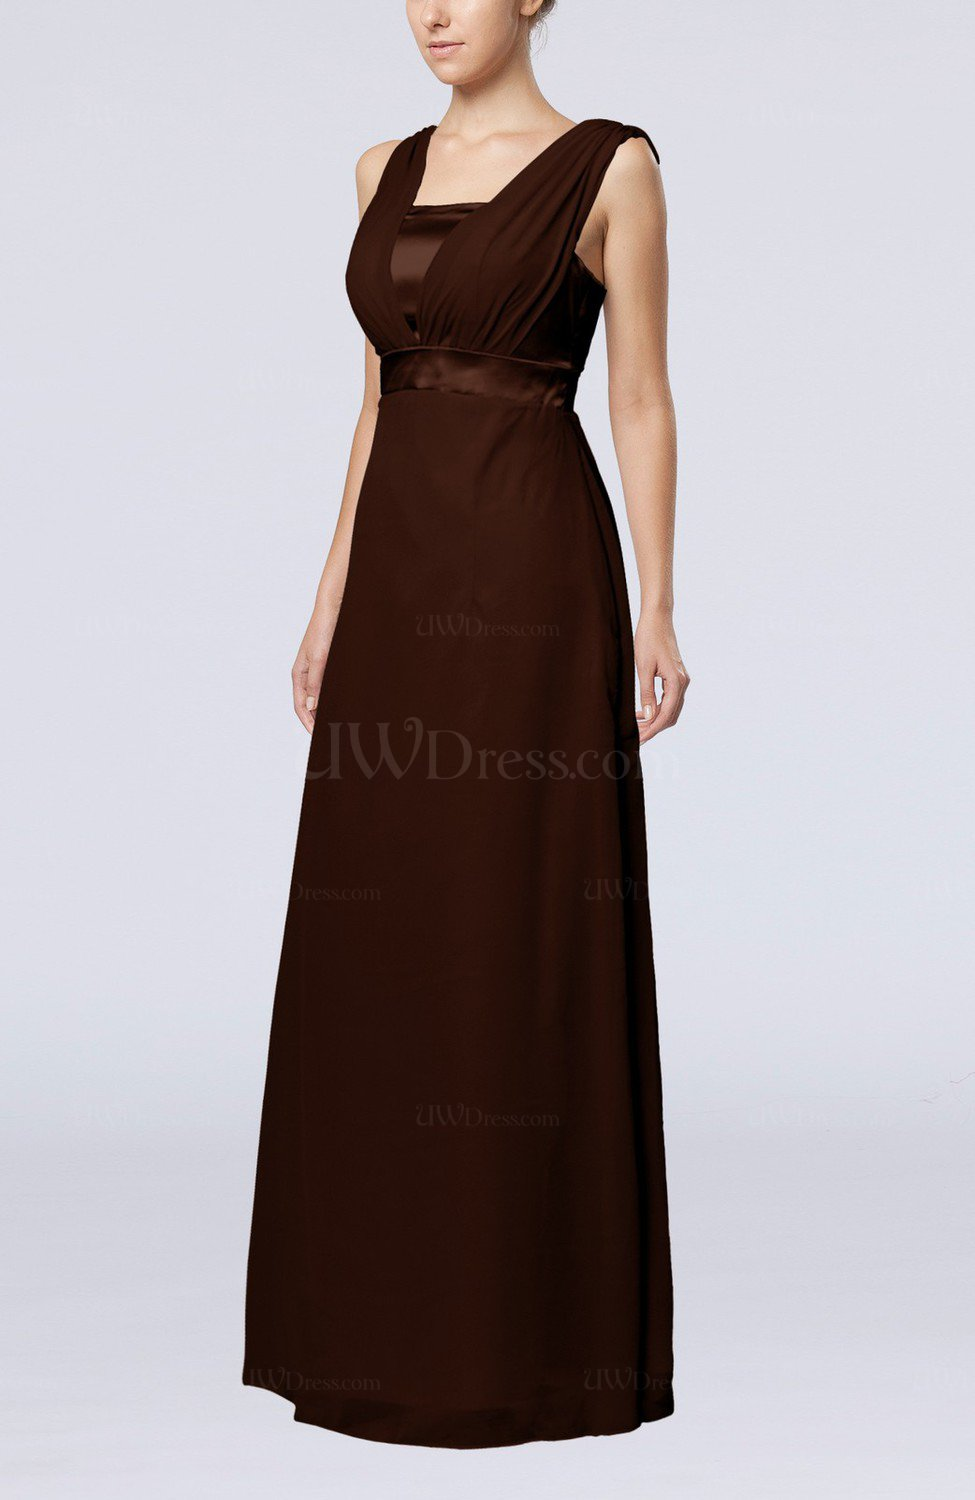 7347d6f7d5c8 Chocolate Brown Elegant Empire Thick Straps Sleeveless Chiffon Floor Length  Wedding Guest Dresses (Style D51660)